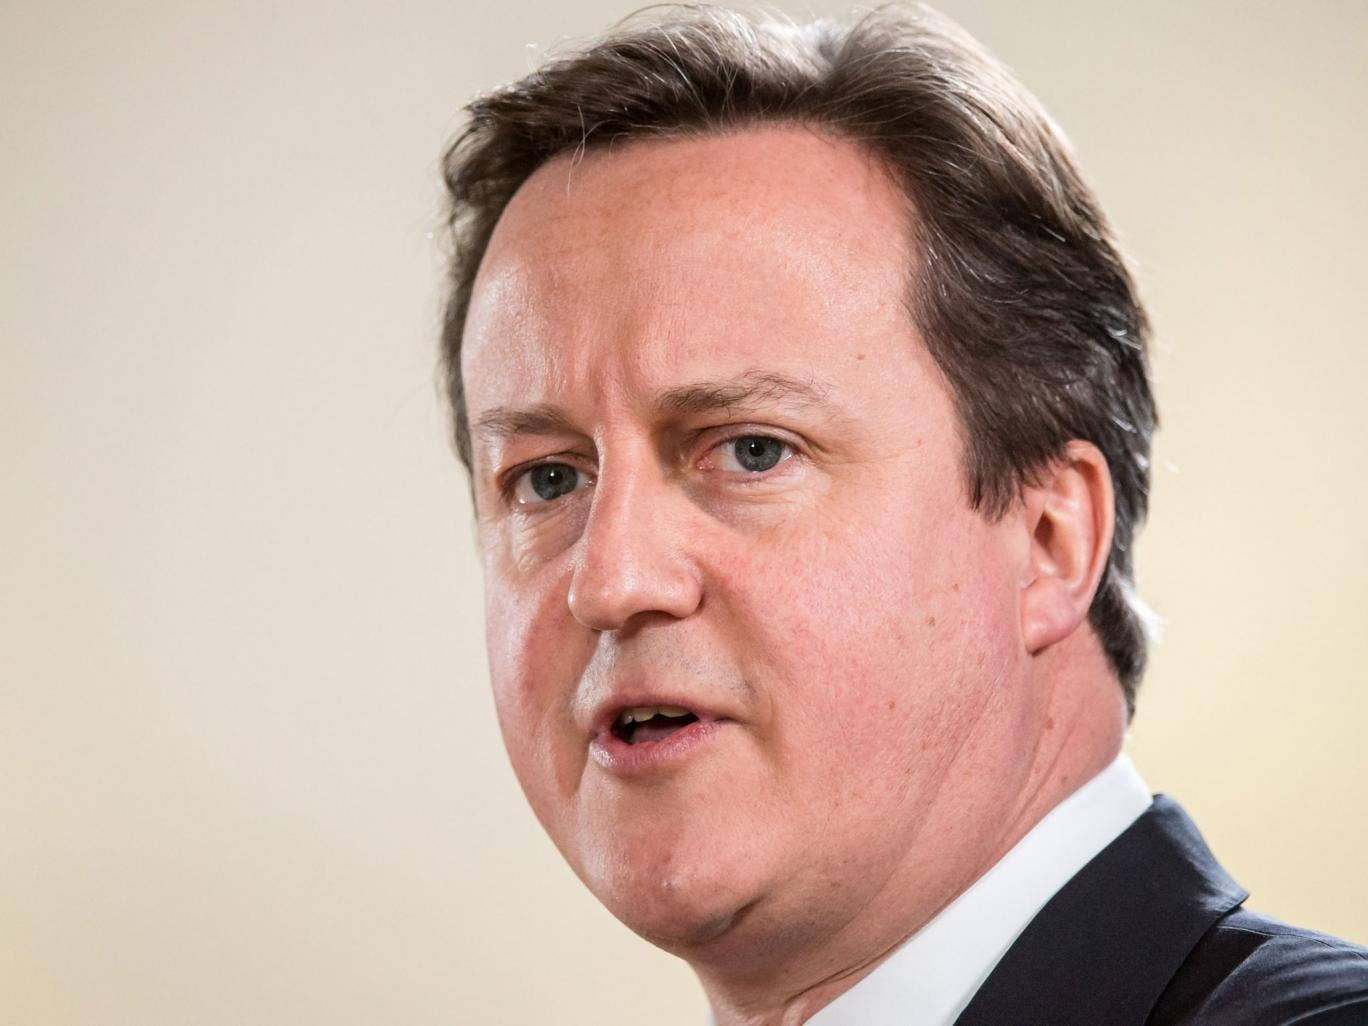 David Cameron was ranked joint fifth in a poll of 8 prime ministers, ahead of only Sir John Major and Gordon Brown